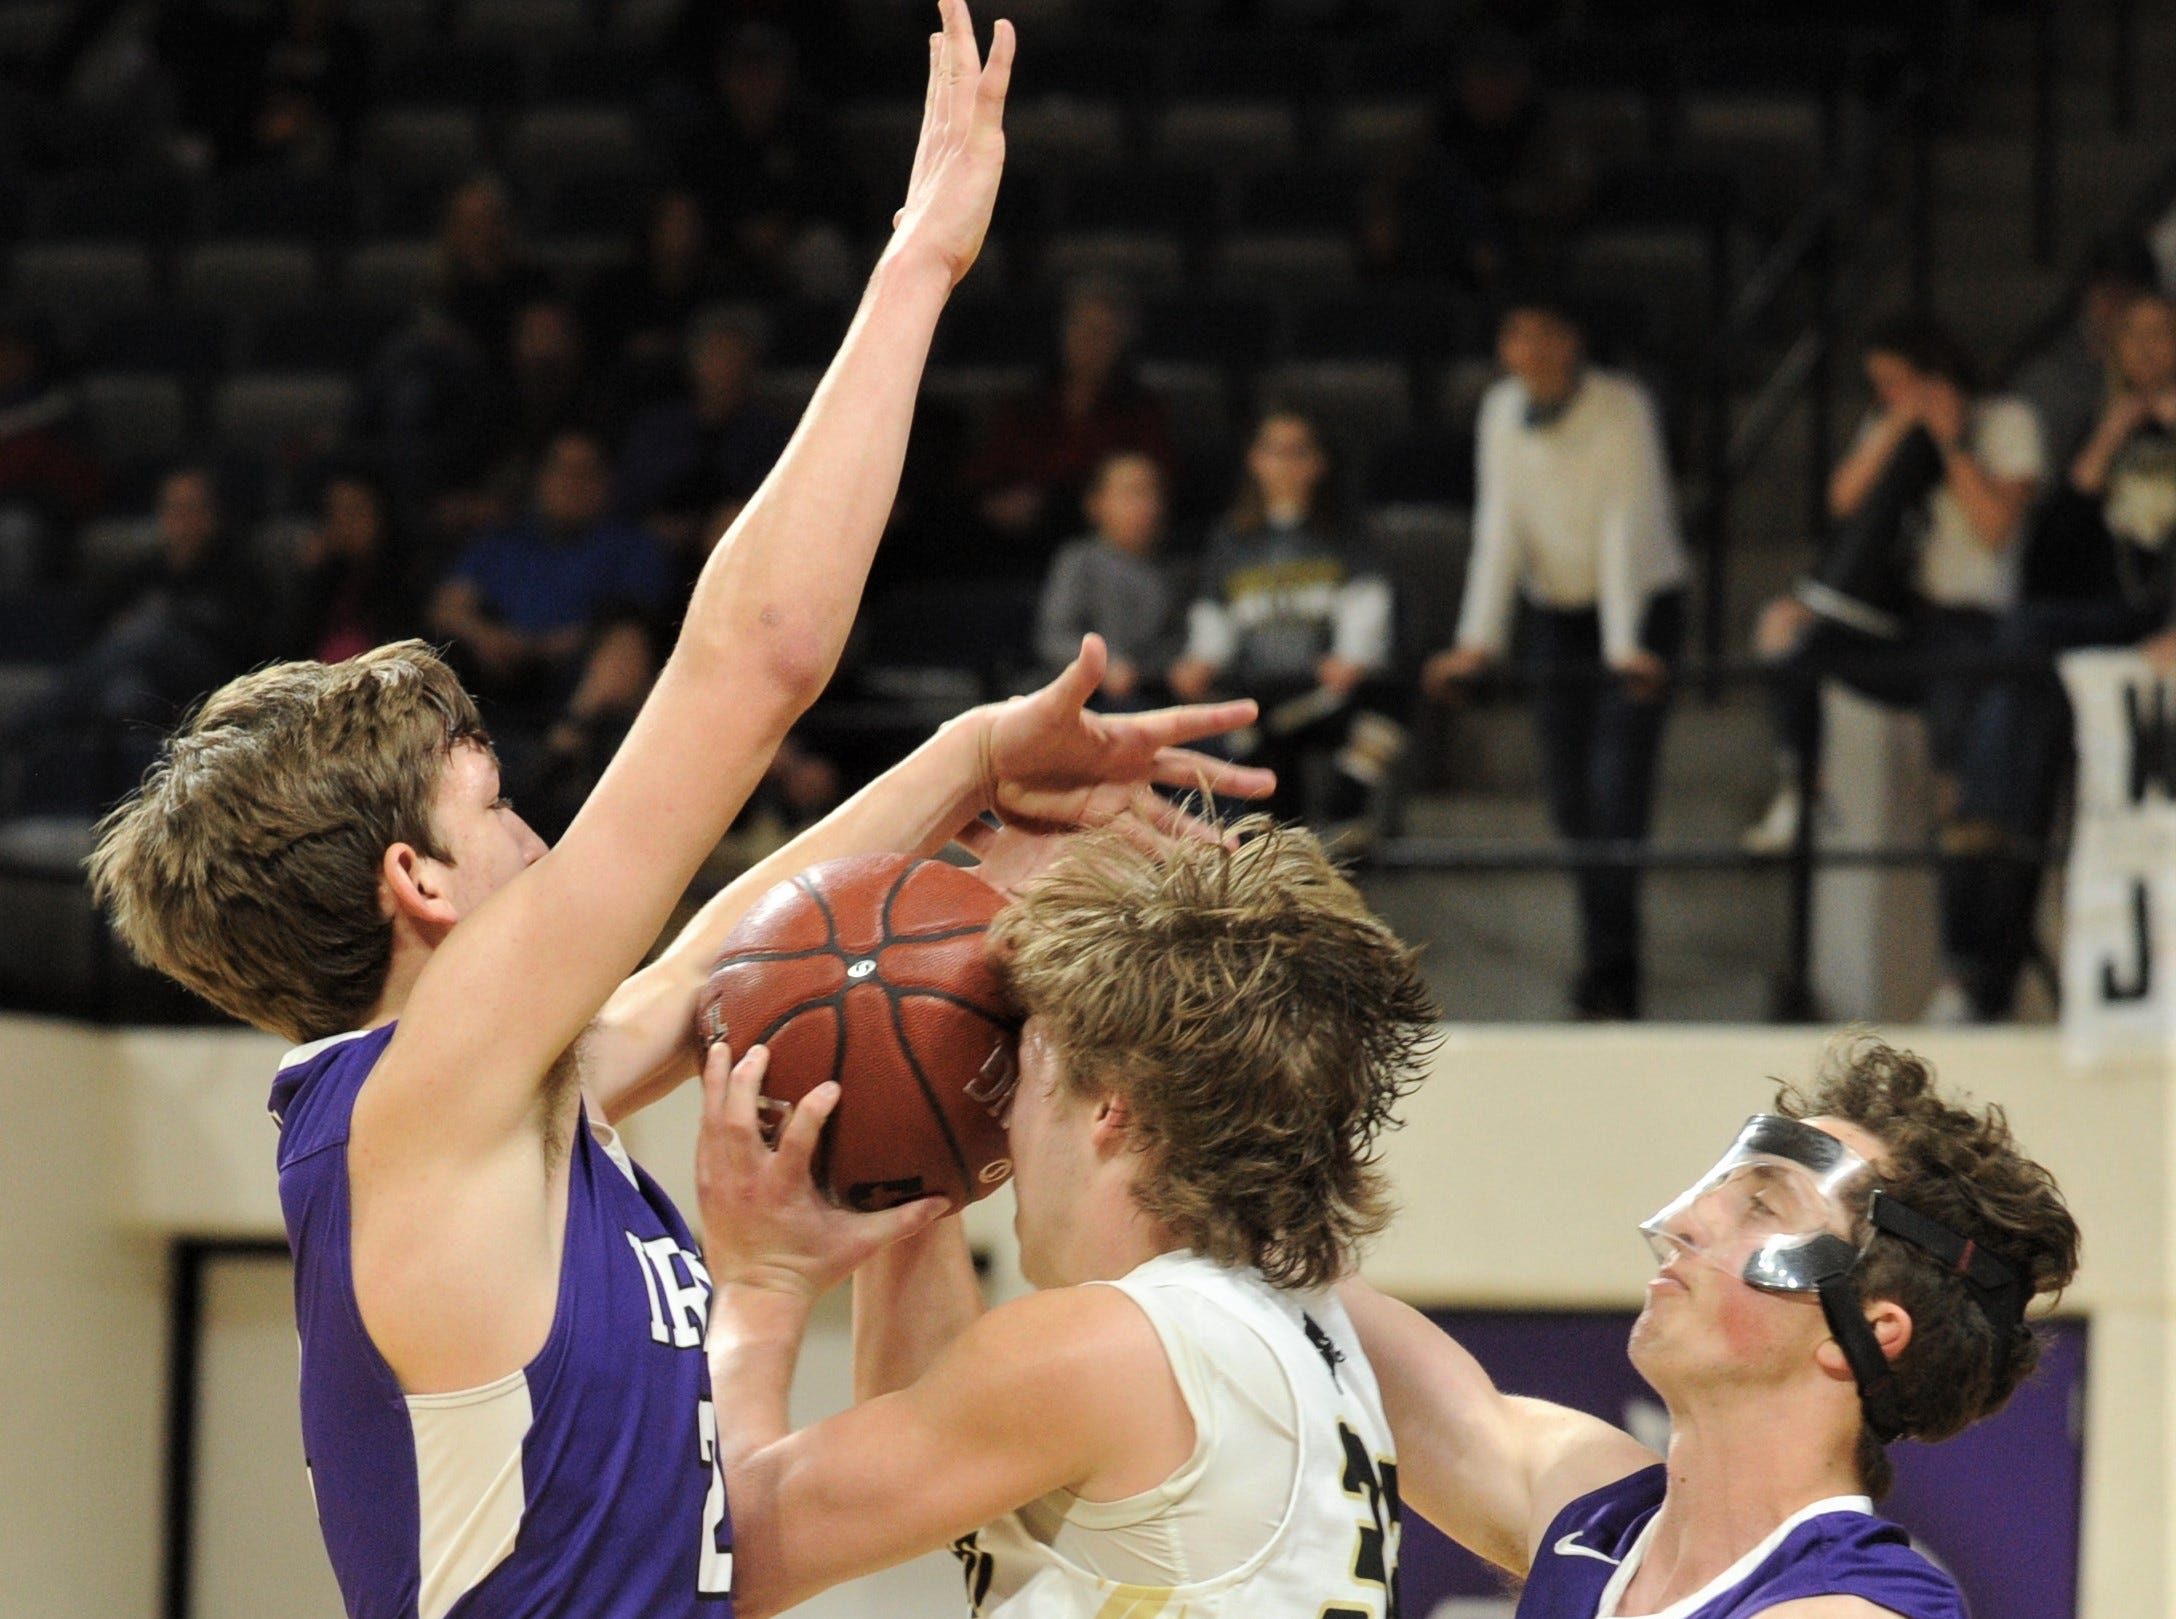 Jayton's Tye Scogin, center, if fouled as he drives to the basket against Irion County's Sawyer Paxton and another teammate. The Jaybirds beat Irion County 47-32 in the Region II-1A championship game Saturday, March 2, 2019, at Abilene Christian's Moody Coliseum.